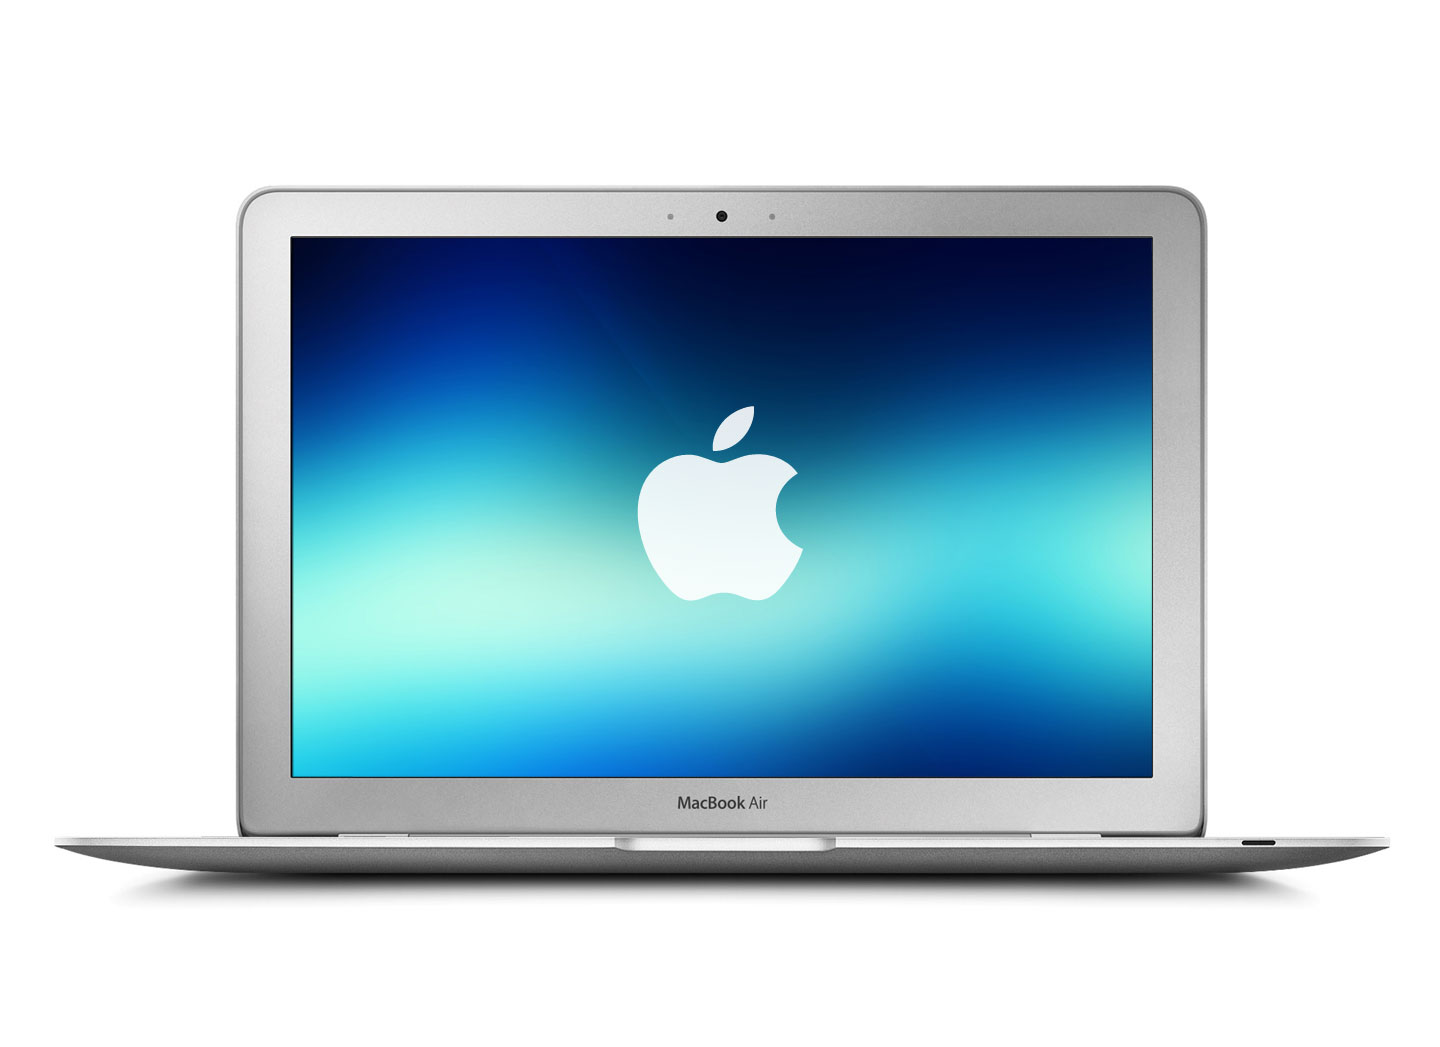 Apple Laptop Apple To Update Macbook Air Line Up Offer Slightly Faster